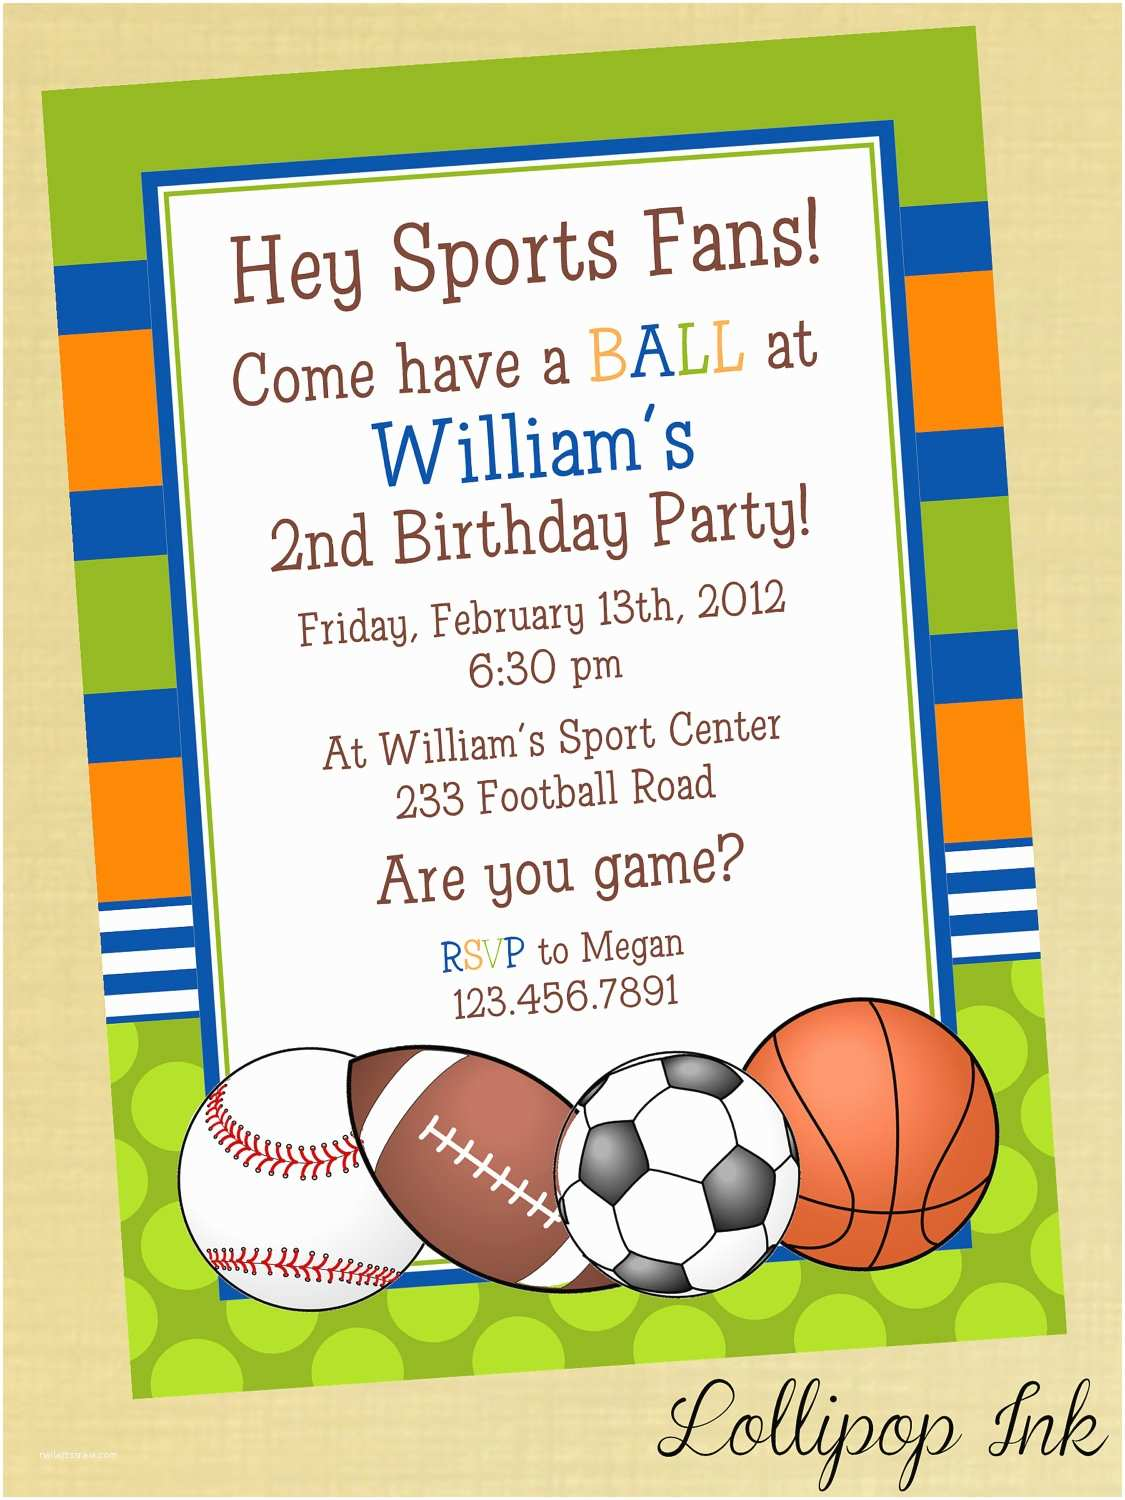 Design Party Invitations top 11 Sports Birthday Party Invitations